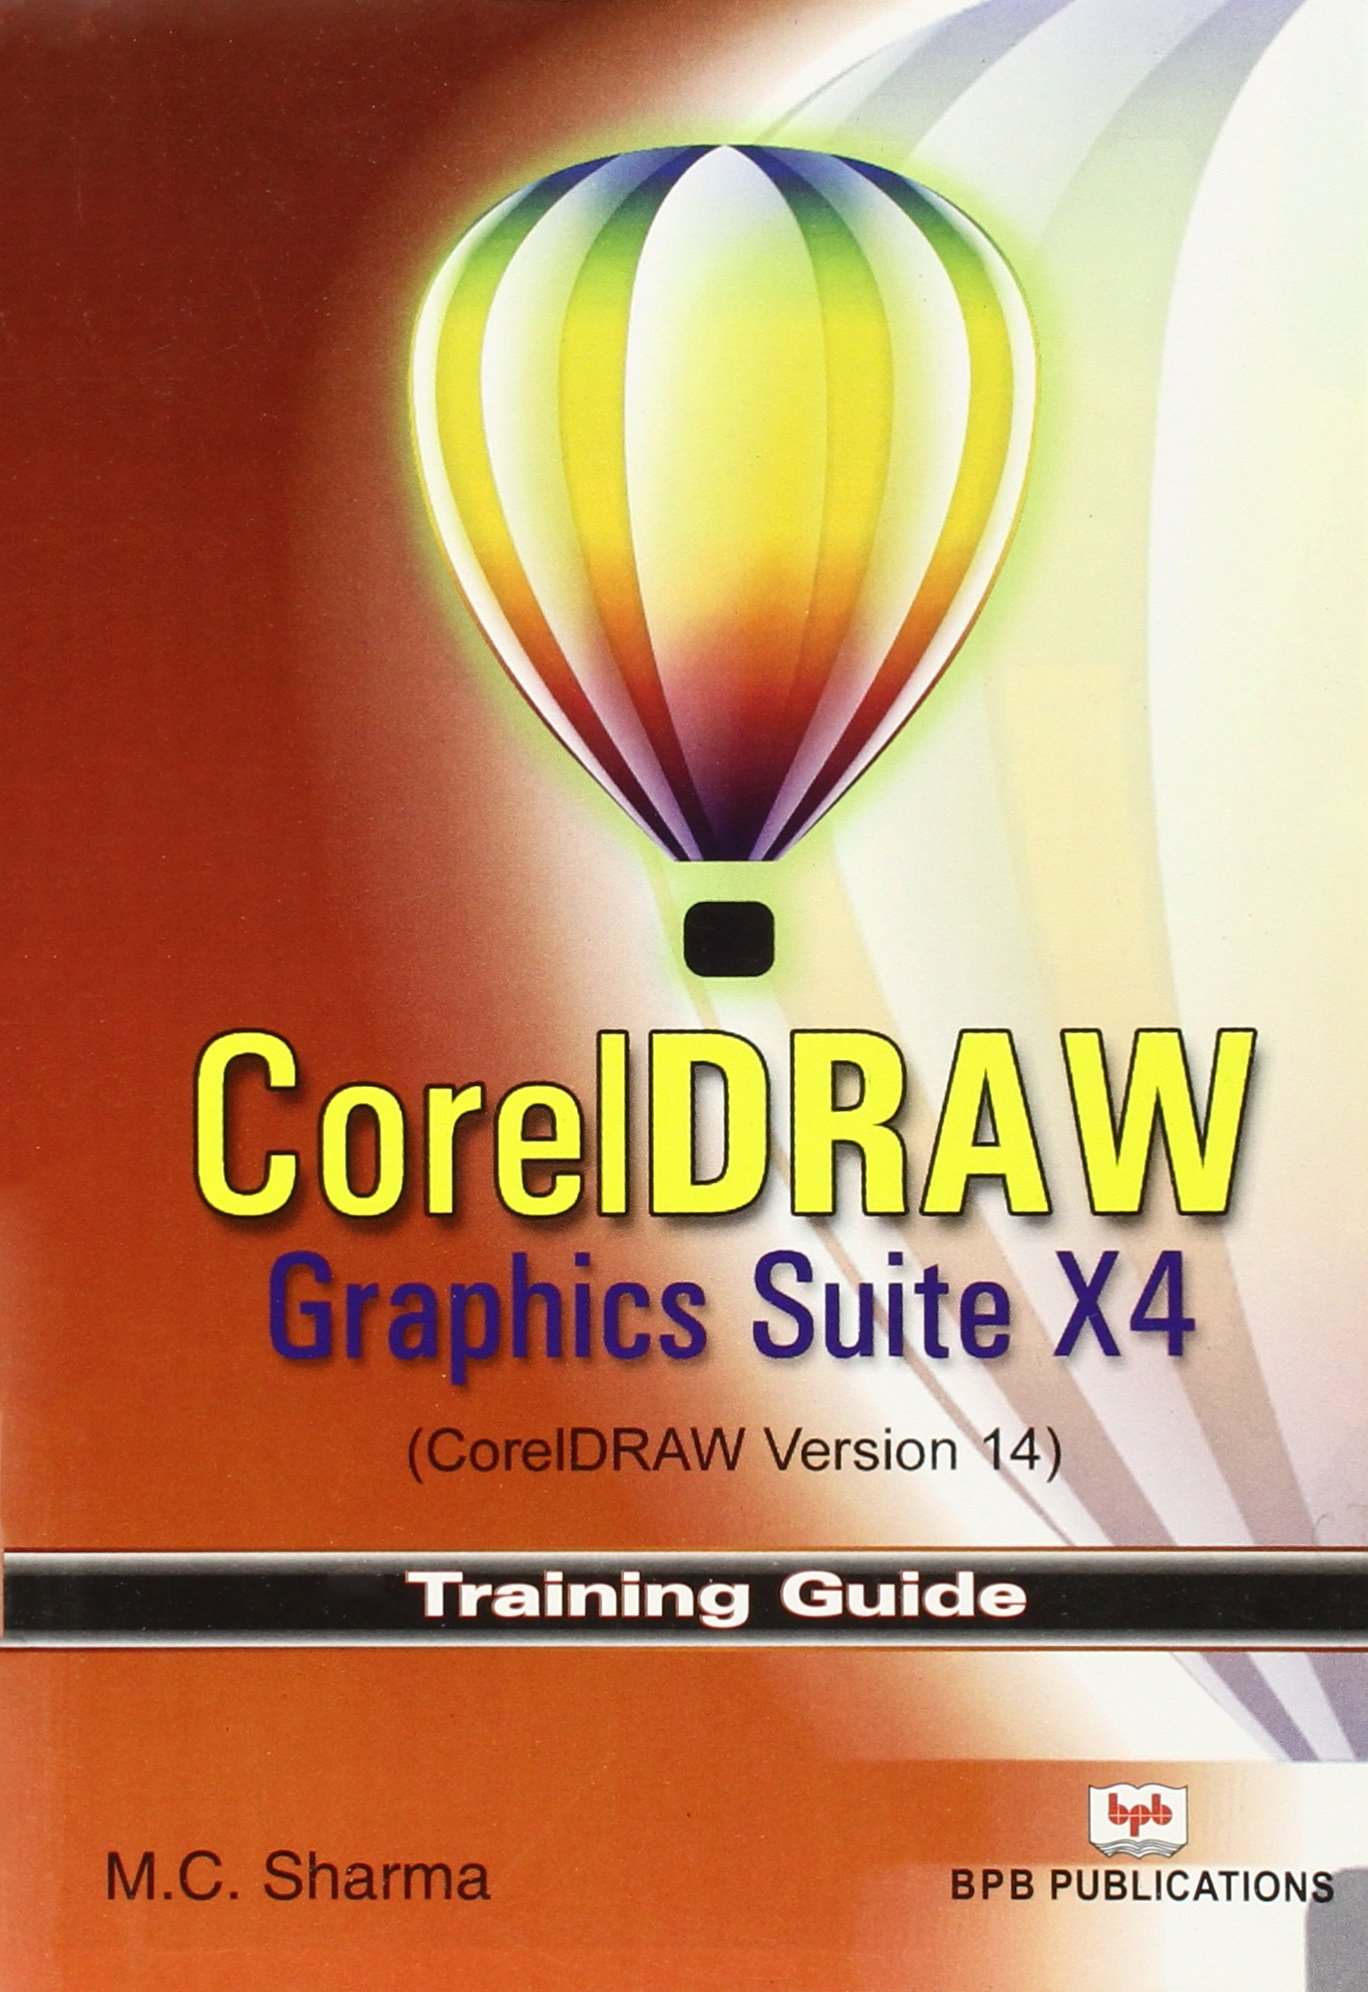 Corel draw version - Buy Corel Draw Graphics Suite X4 Corel Draw Version 14 Book Online At Low Prices In India Corel Draw Graphics Suite X4 Corel Draw Version 14 Reviews